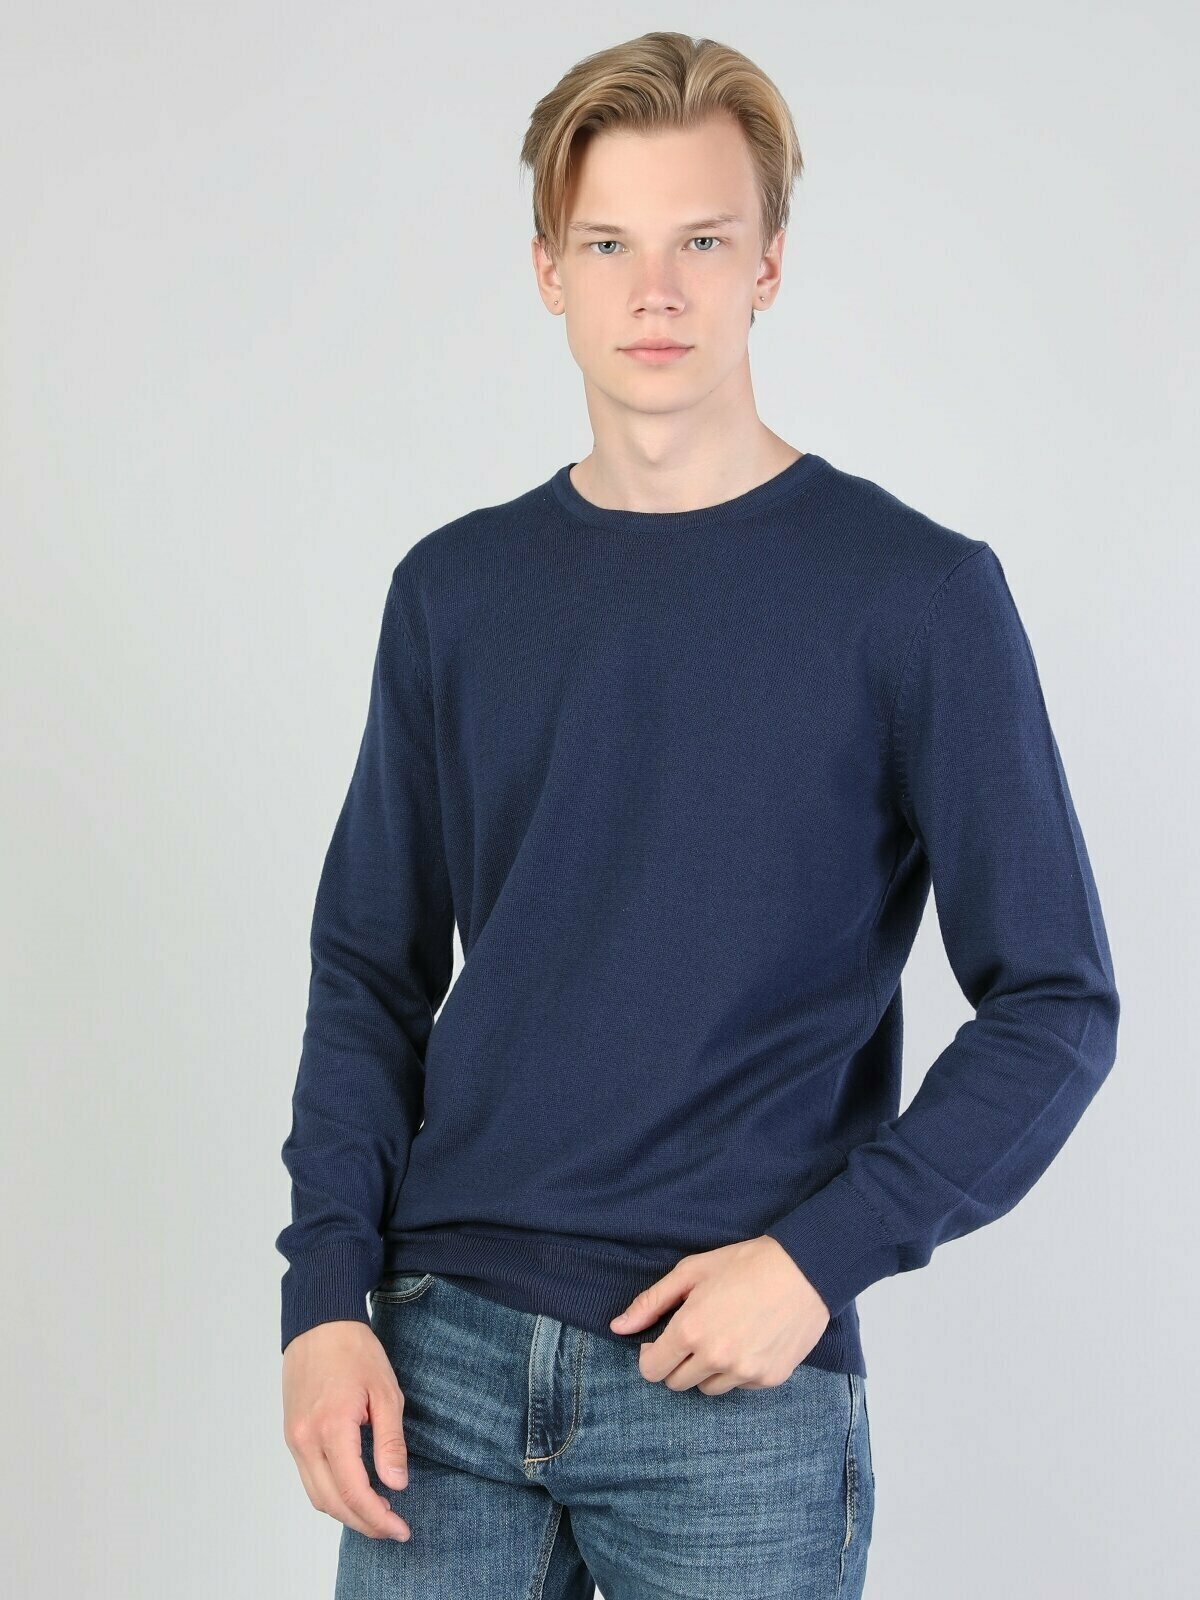 Colins Men Regular Fit Navy Heather SweatersMen's sweater fashion sweater outerwear,CL1023186